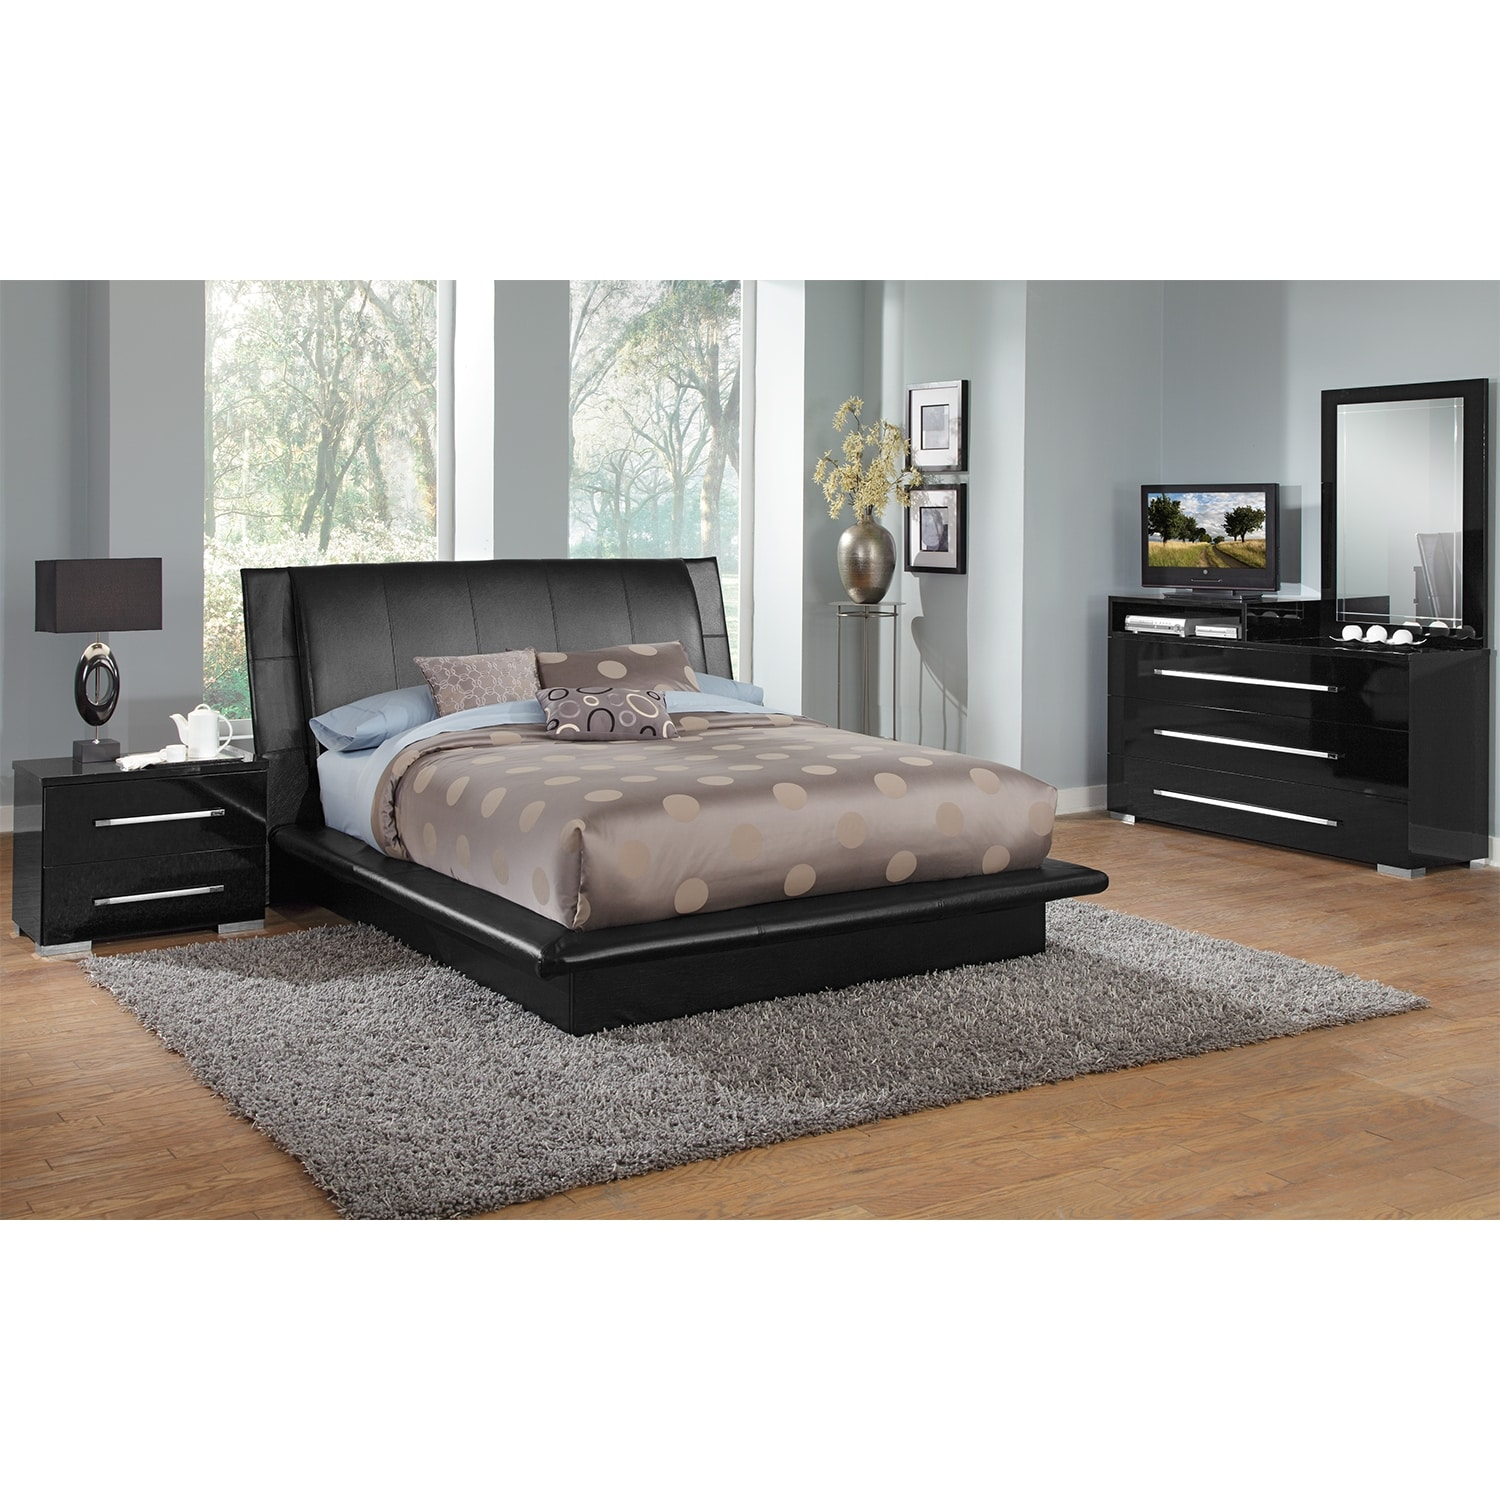 Bedroom Furniture - Dimora Black 6 Pc. Queen Bedroom